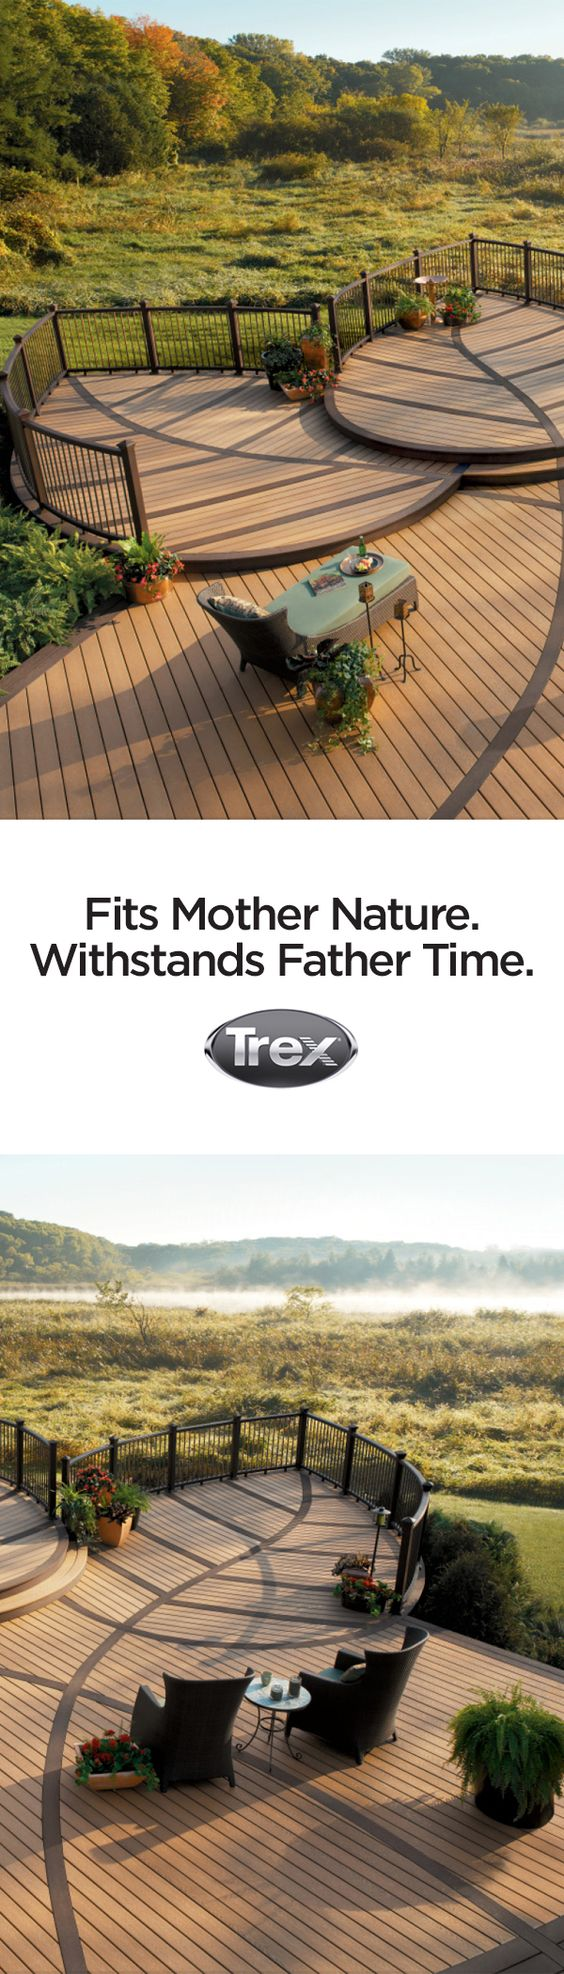 Trex Transcend In Spiced Rum   We Love The Warm, Earthy Umber Of This Hue!  #decking   Trex: Available Decking Colors   Pinterest   Spiced Rum, ...